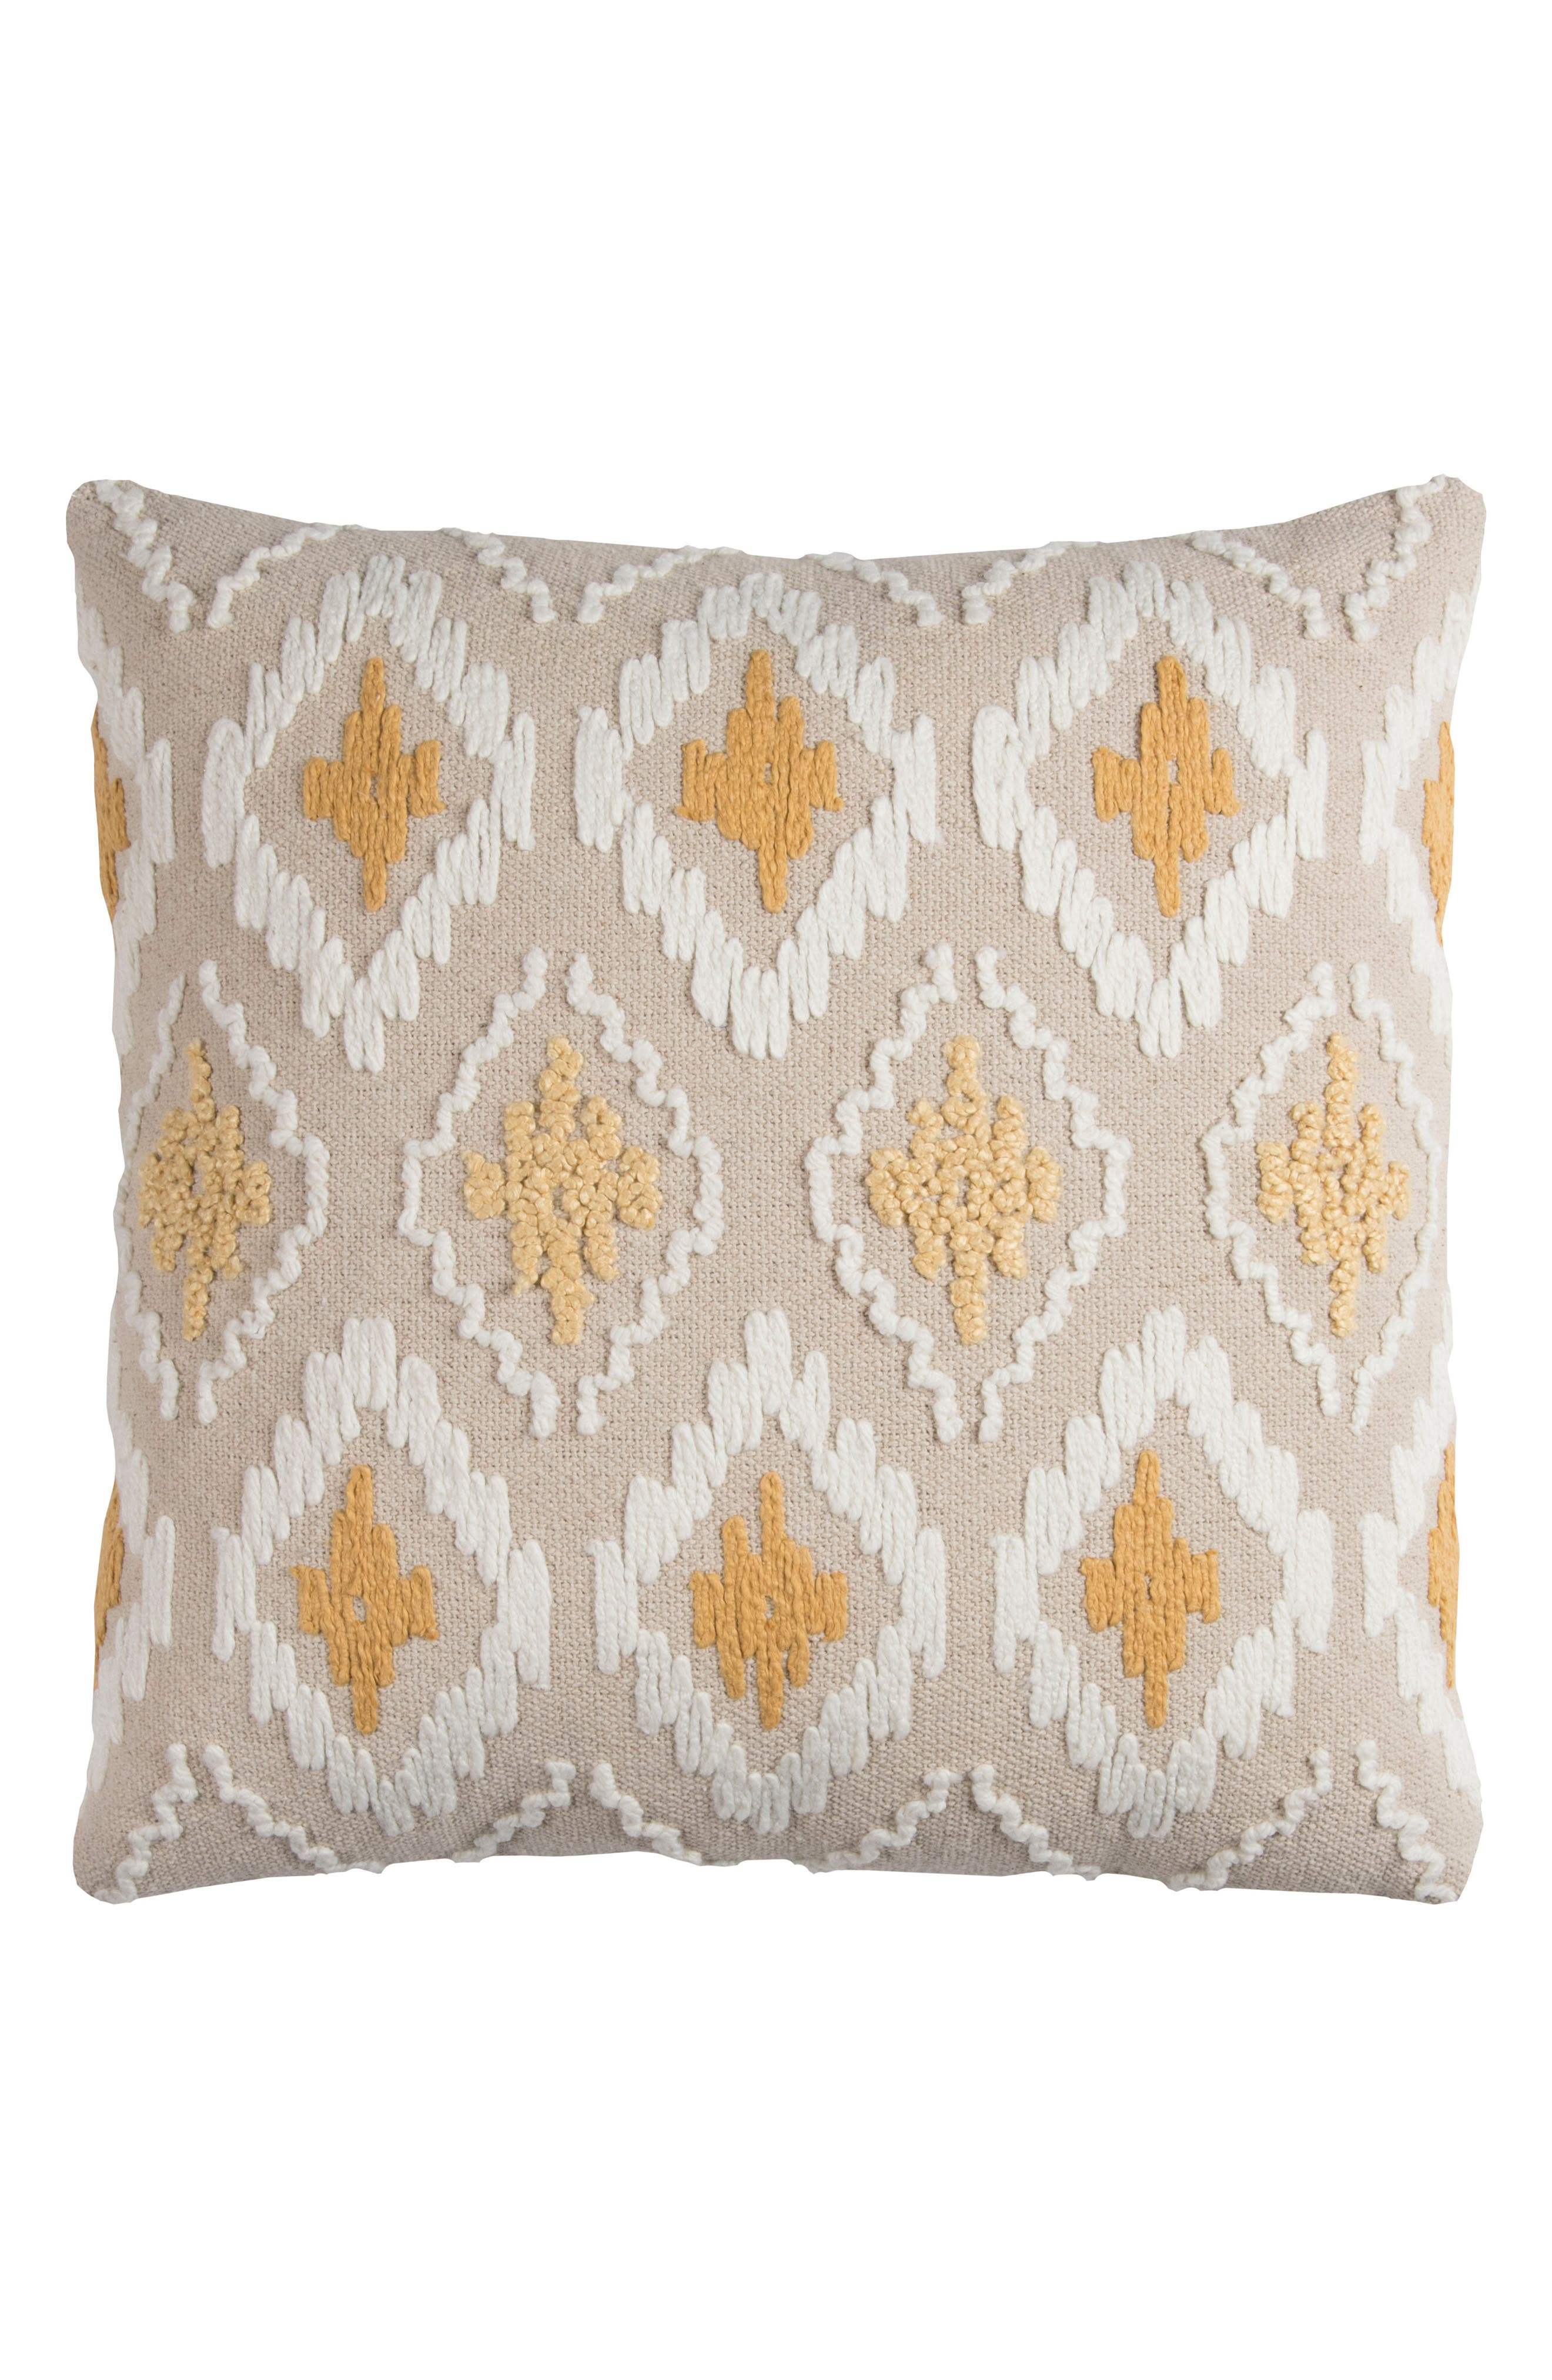 Diamond Pillow,                             Main thumbnail 1, color,                             Gold